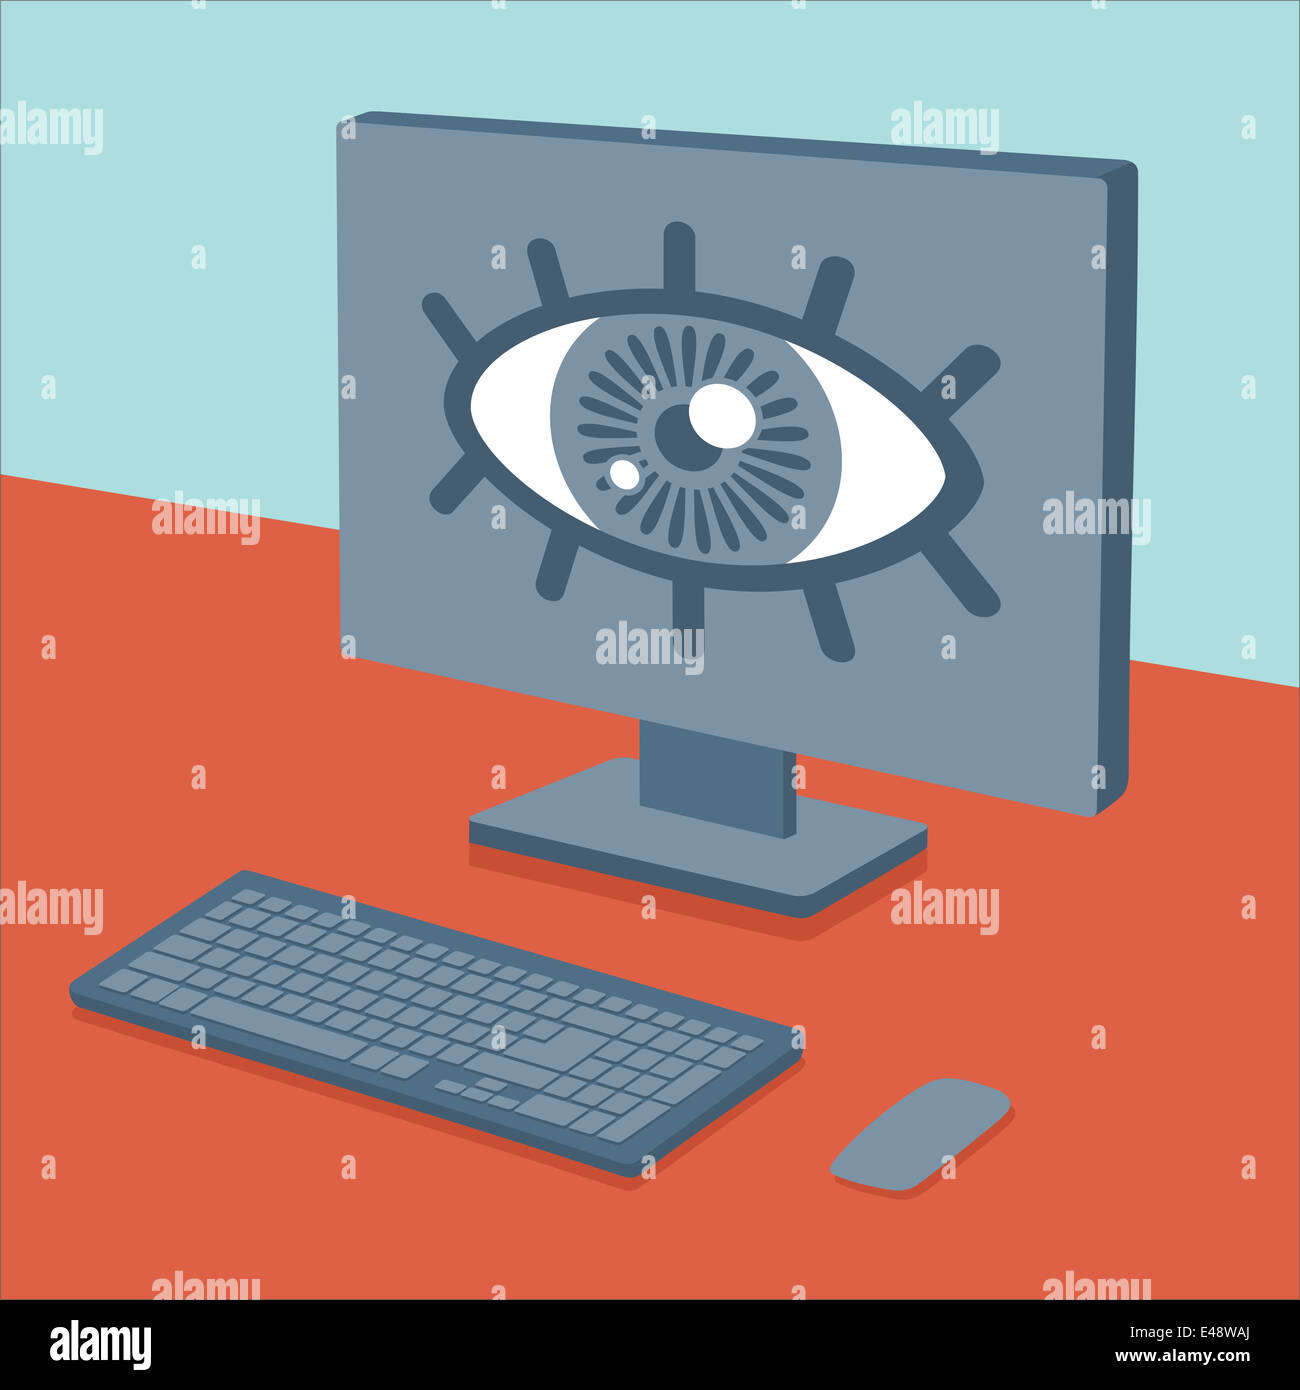 Spying on users - Stock Image